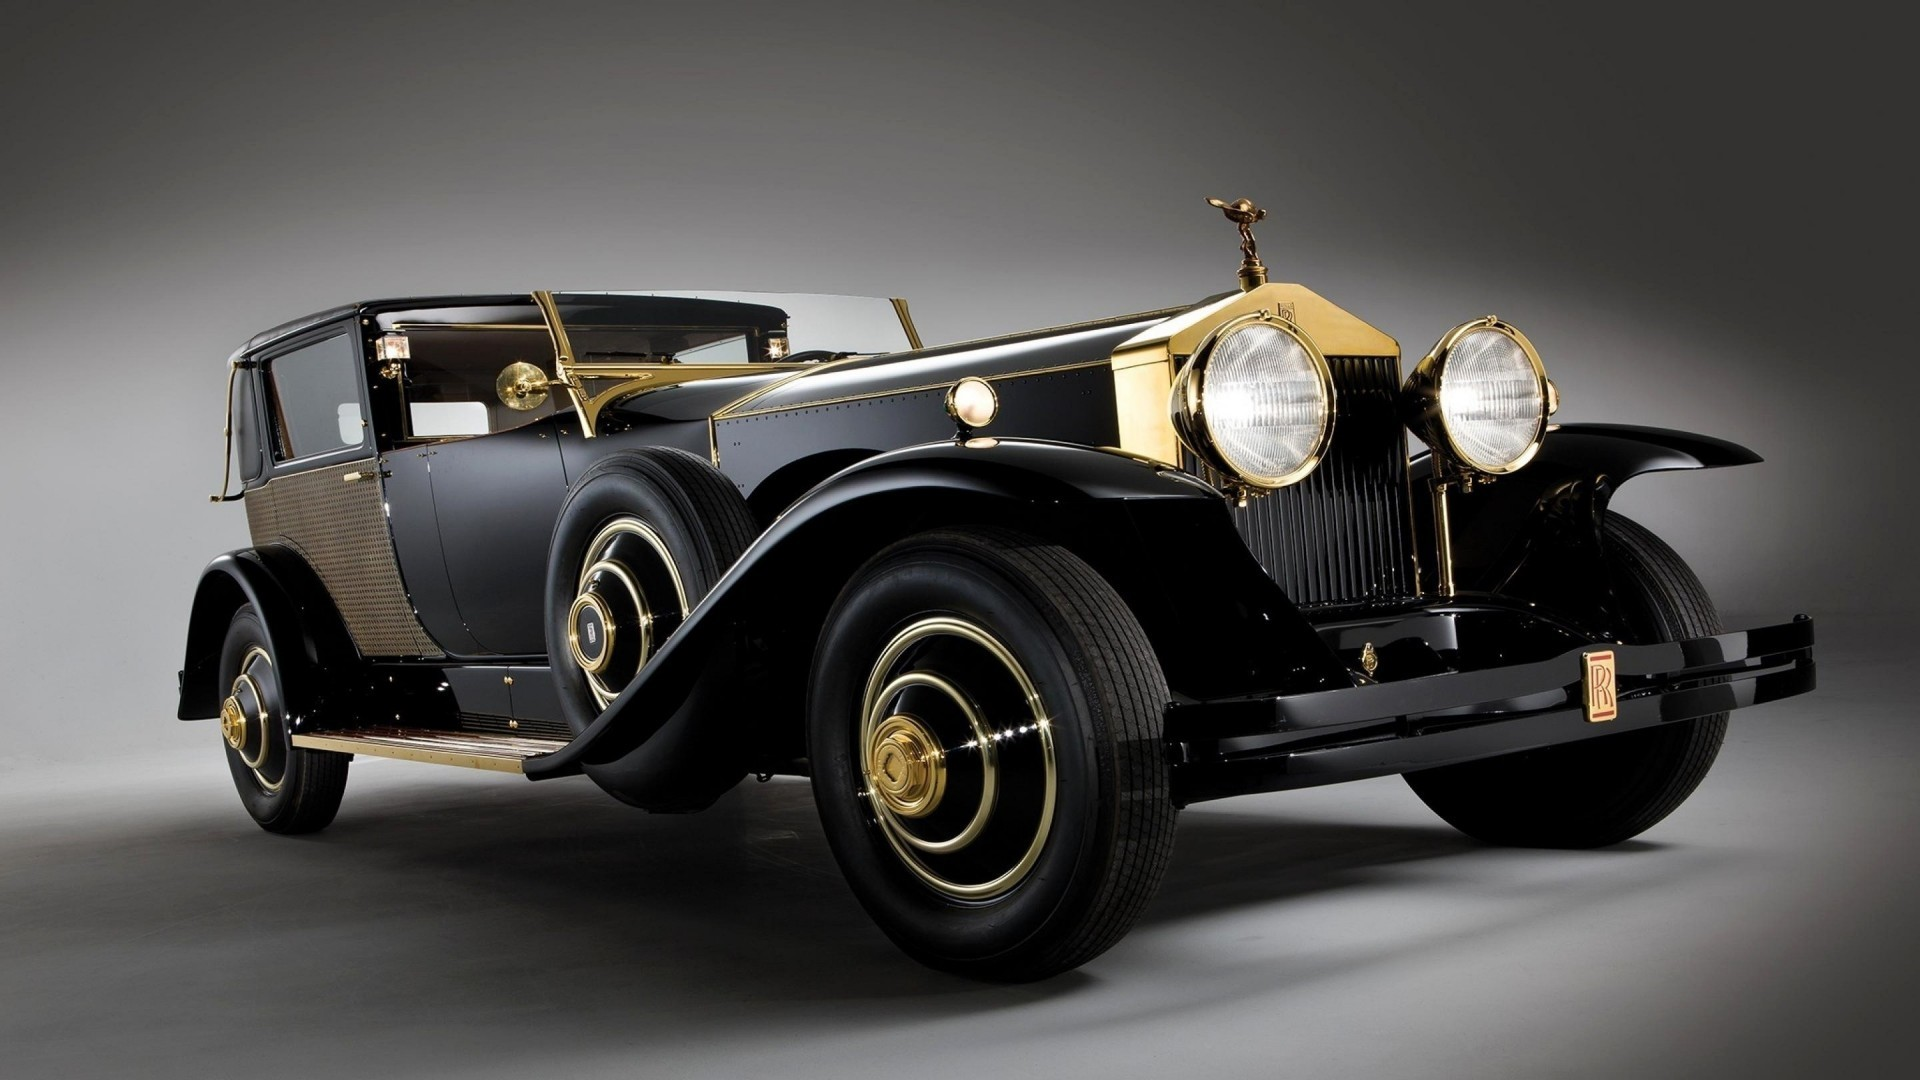 Rolls-Royce Phantom I – World Of Classic Cars – Rank 167